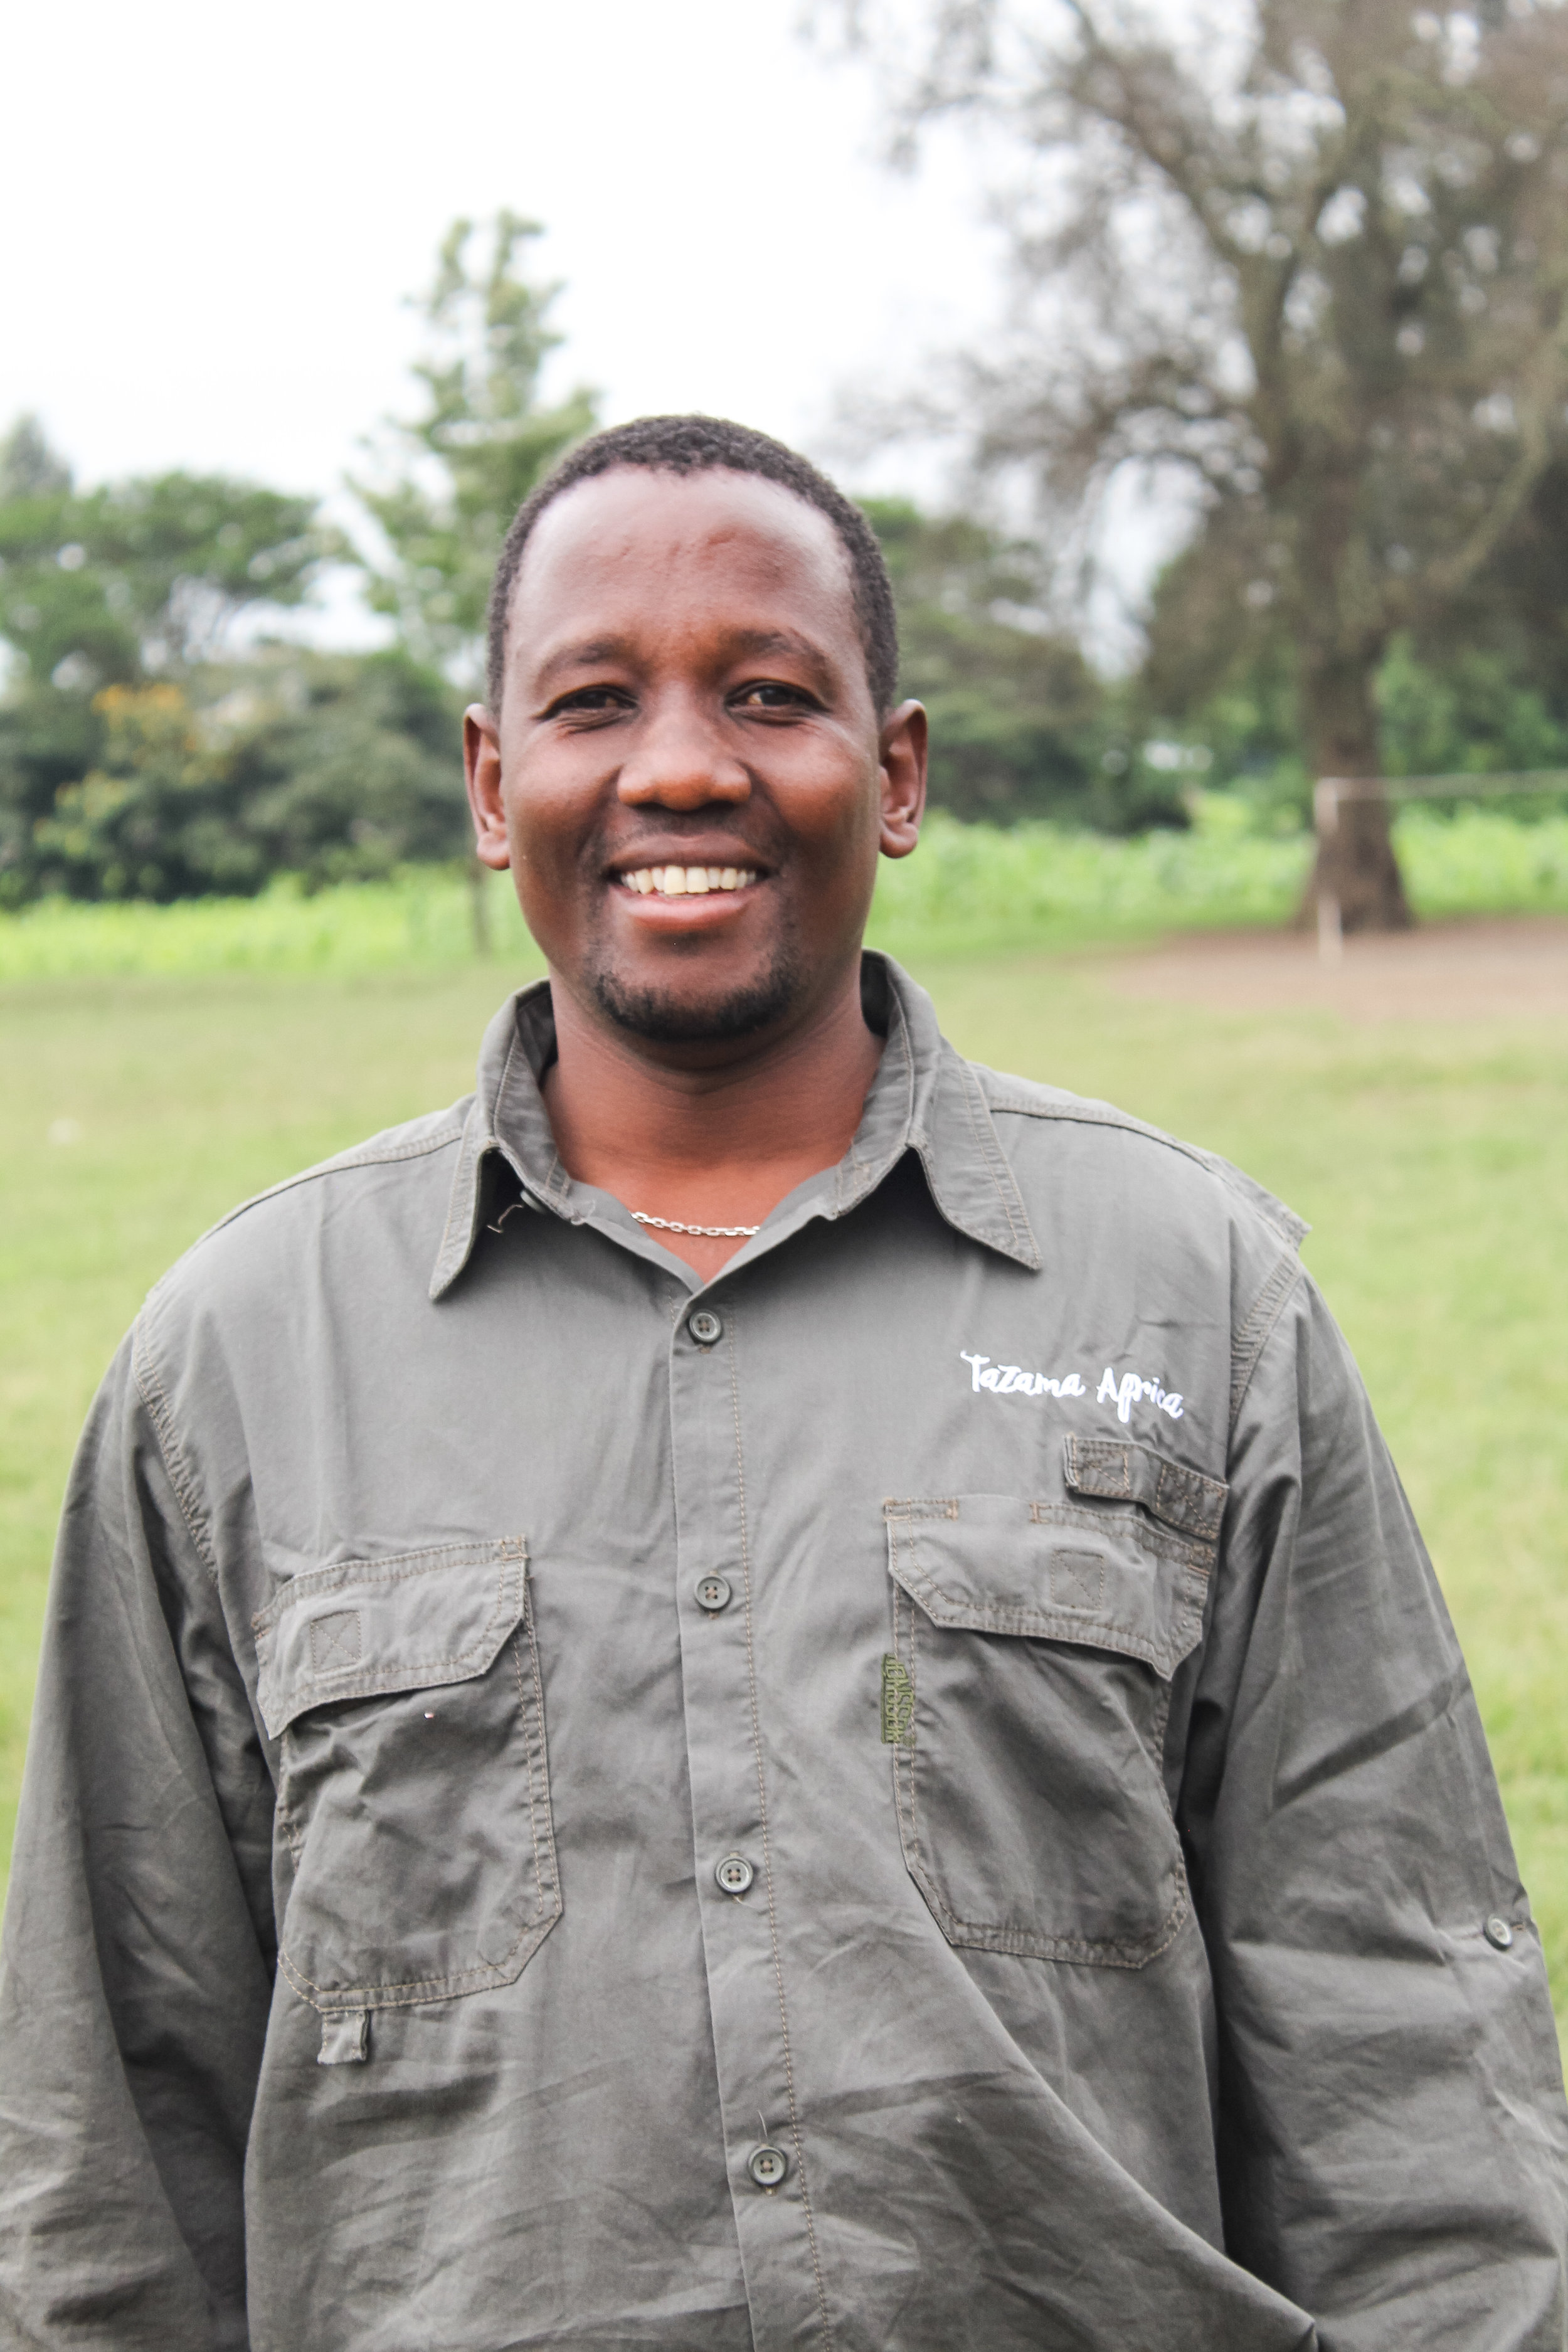 Safari, Head Safari Guide  His name says it all, he was born to do this! Safari's quiet confidence, great sense of humor and gentle nature make him a favorite for many of our guests. When he's not guiding, you'll often find him getting his hands dusty with his passion project, carpentry.